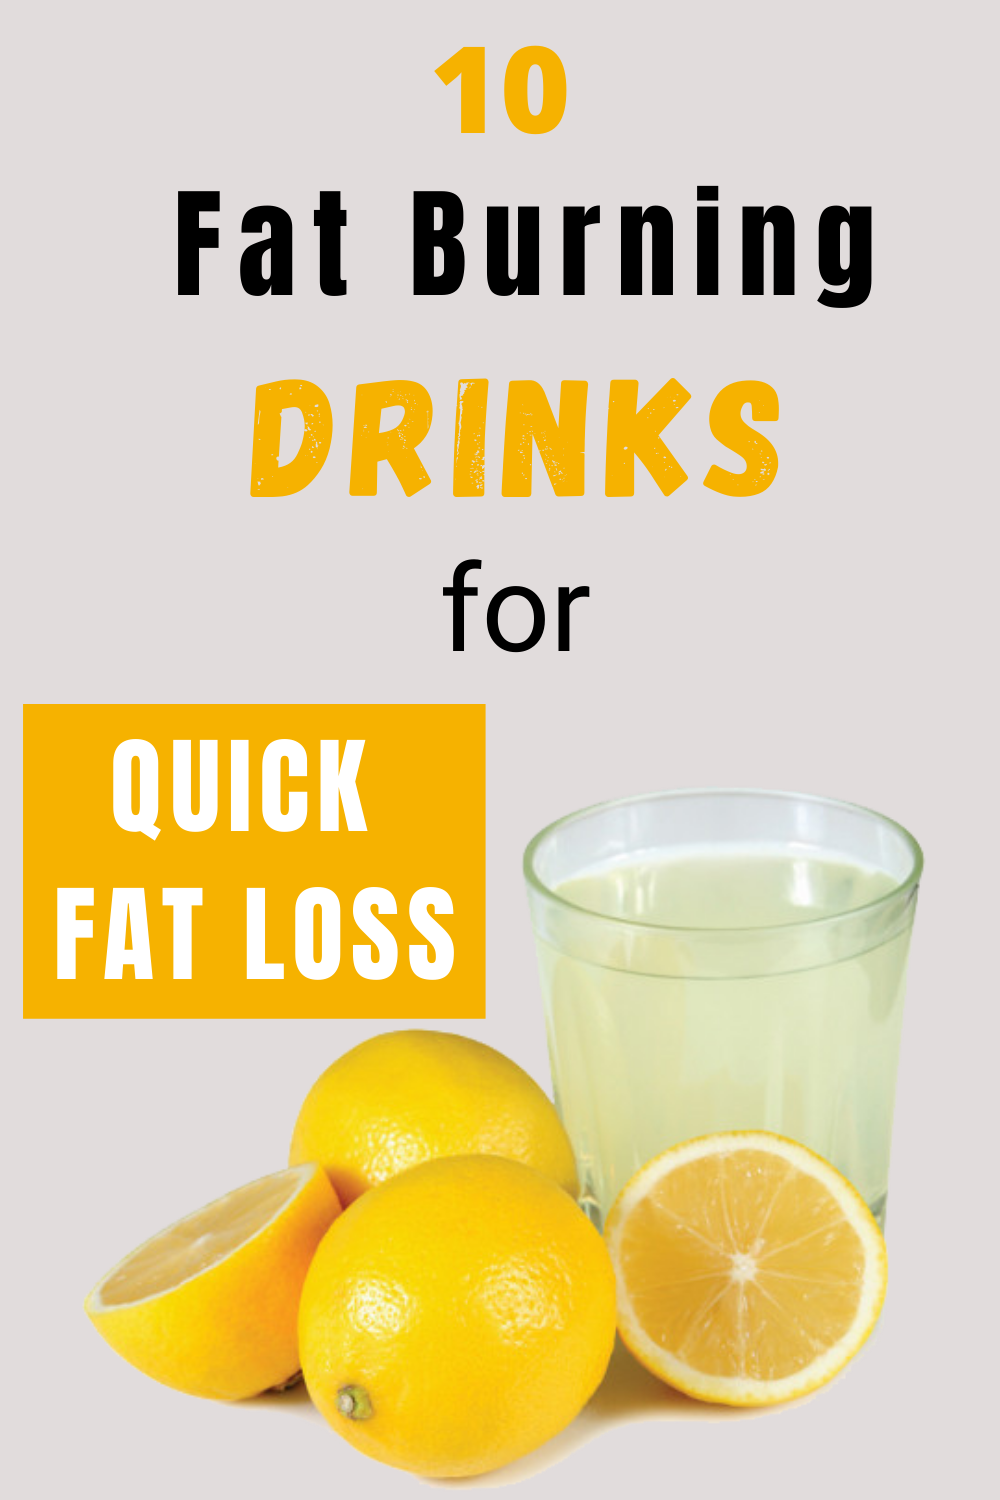 10 Fat Burning Drinks For Quick Fat Loss